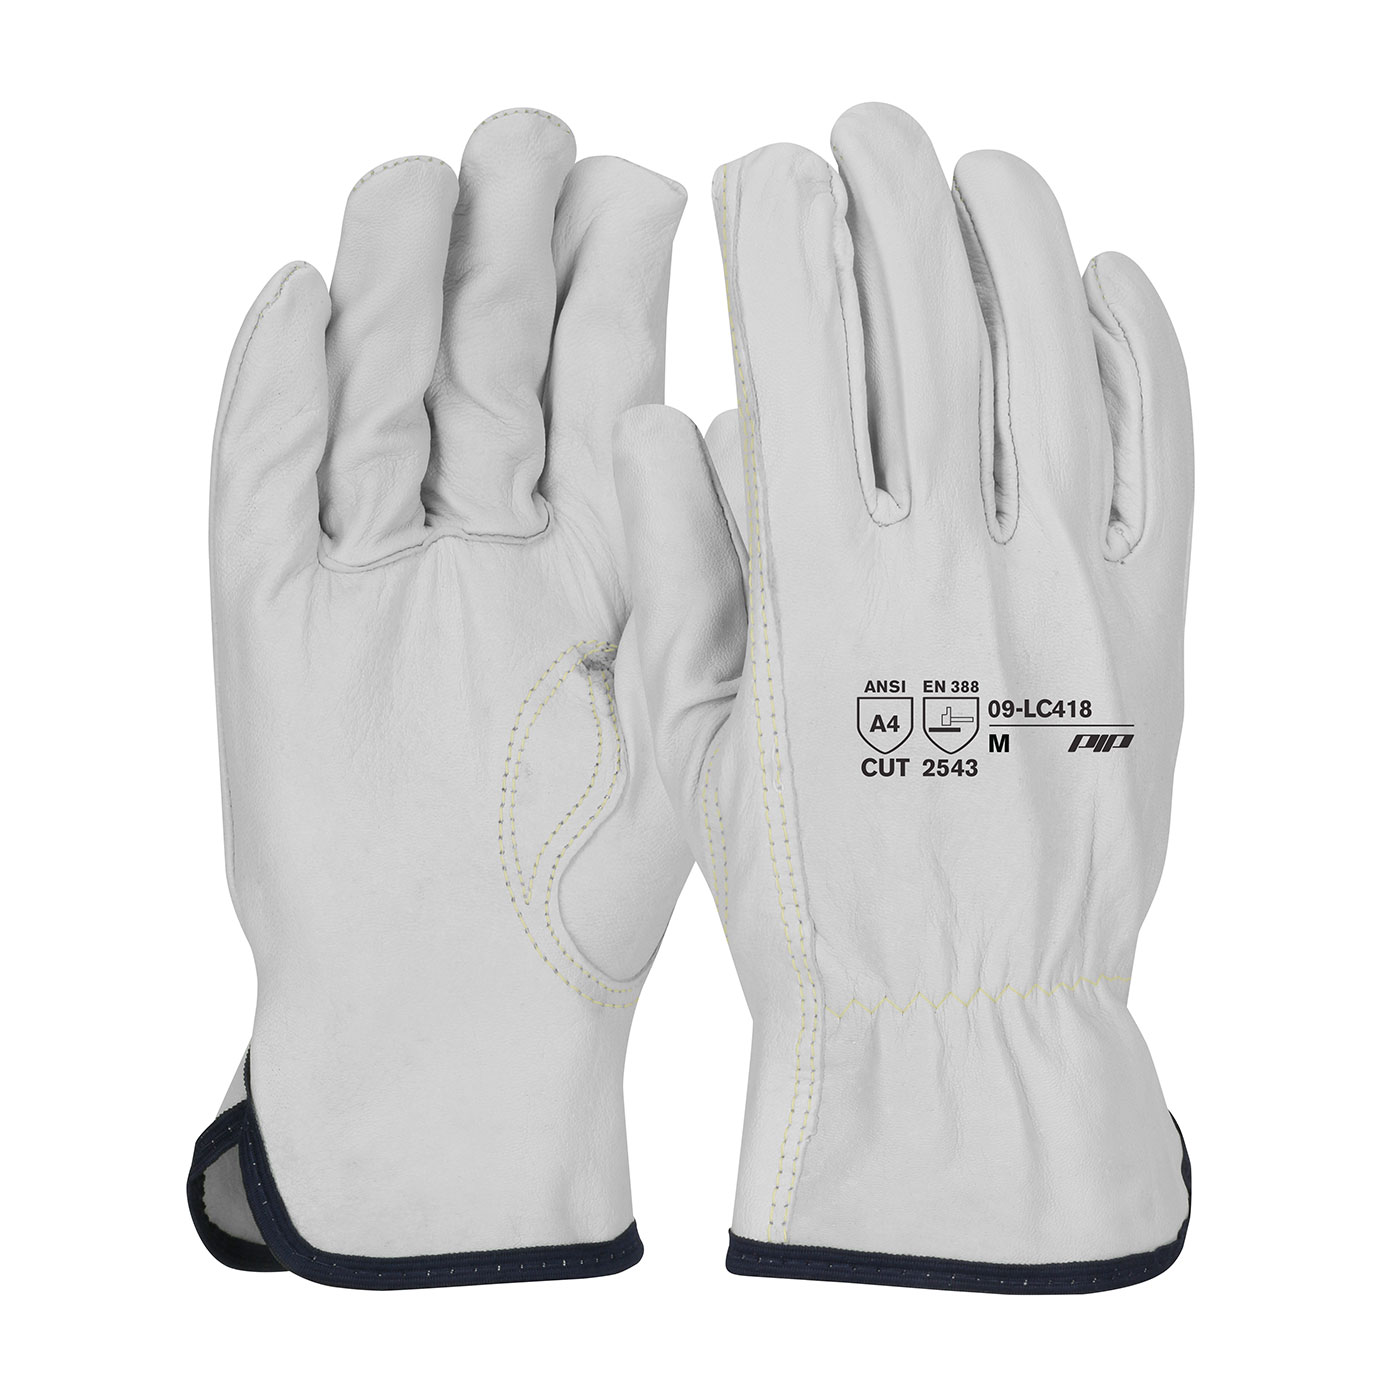 Premium Grade Top Grain Goatskin Leather Drivers Glove with Aramid Blended Lining and Kevlar® Stitching - Keystone Thumb, Natural, L